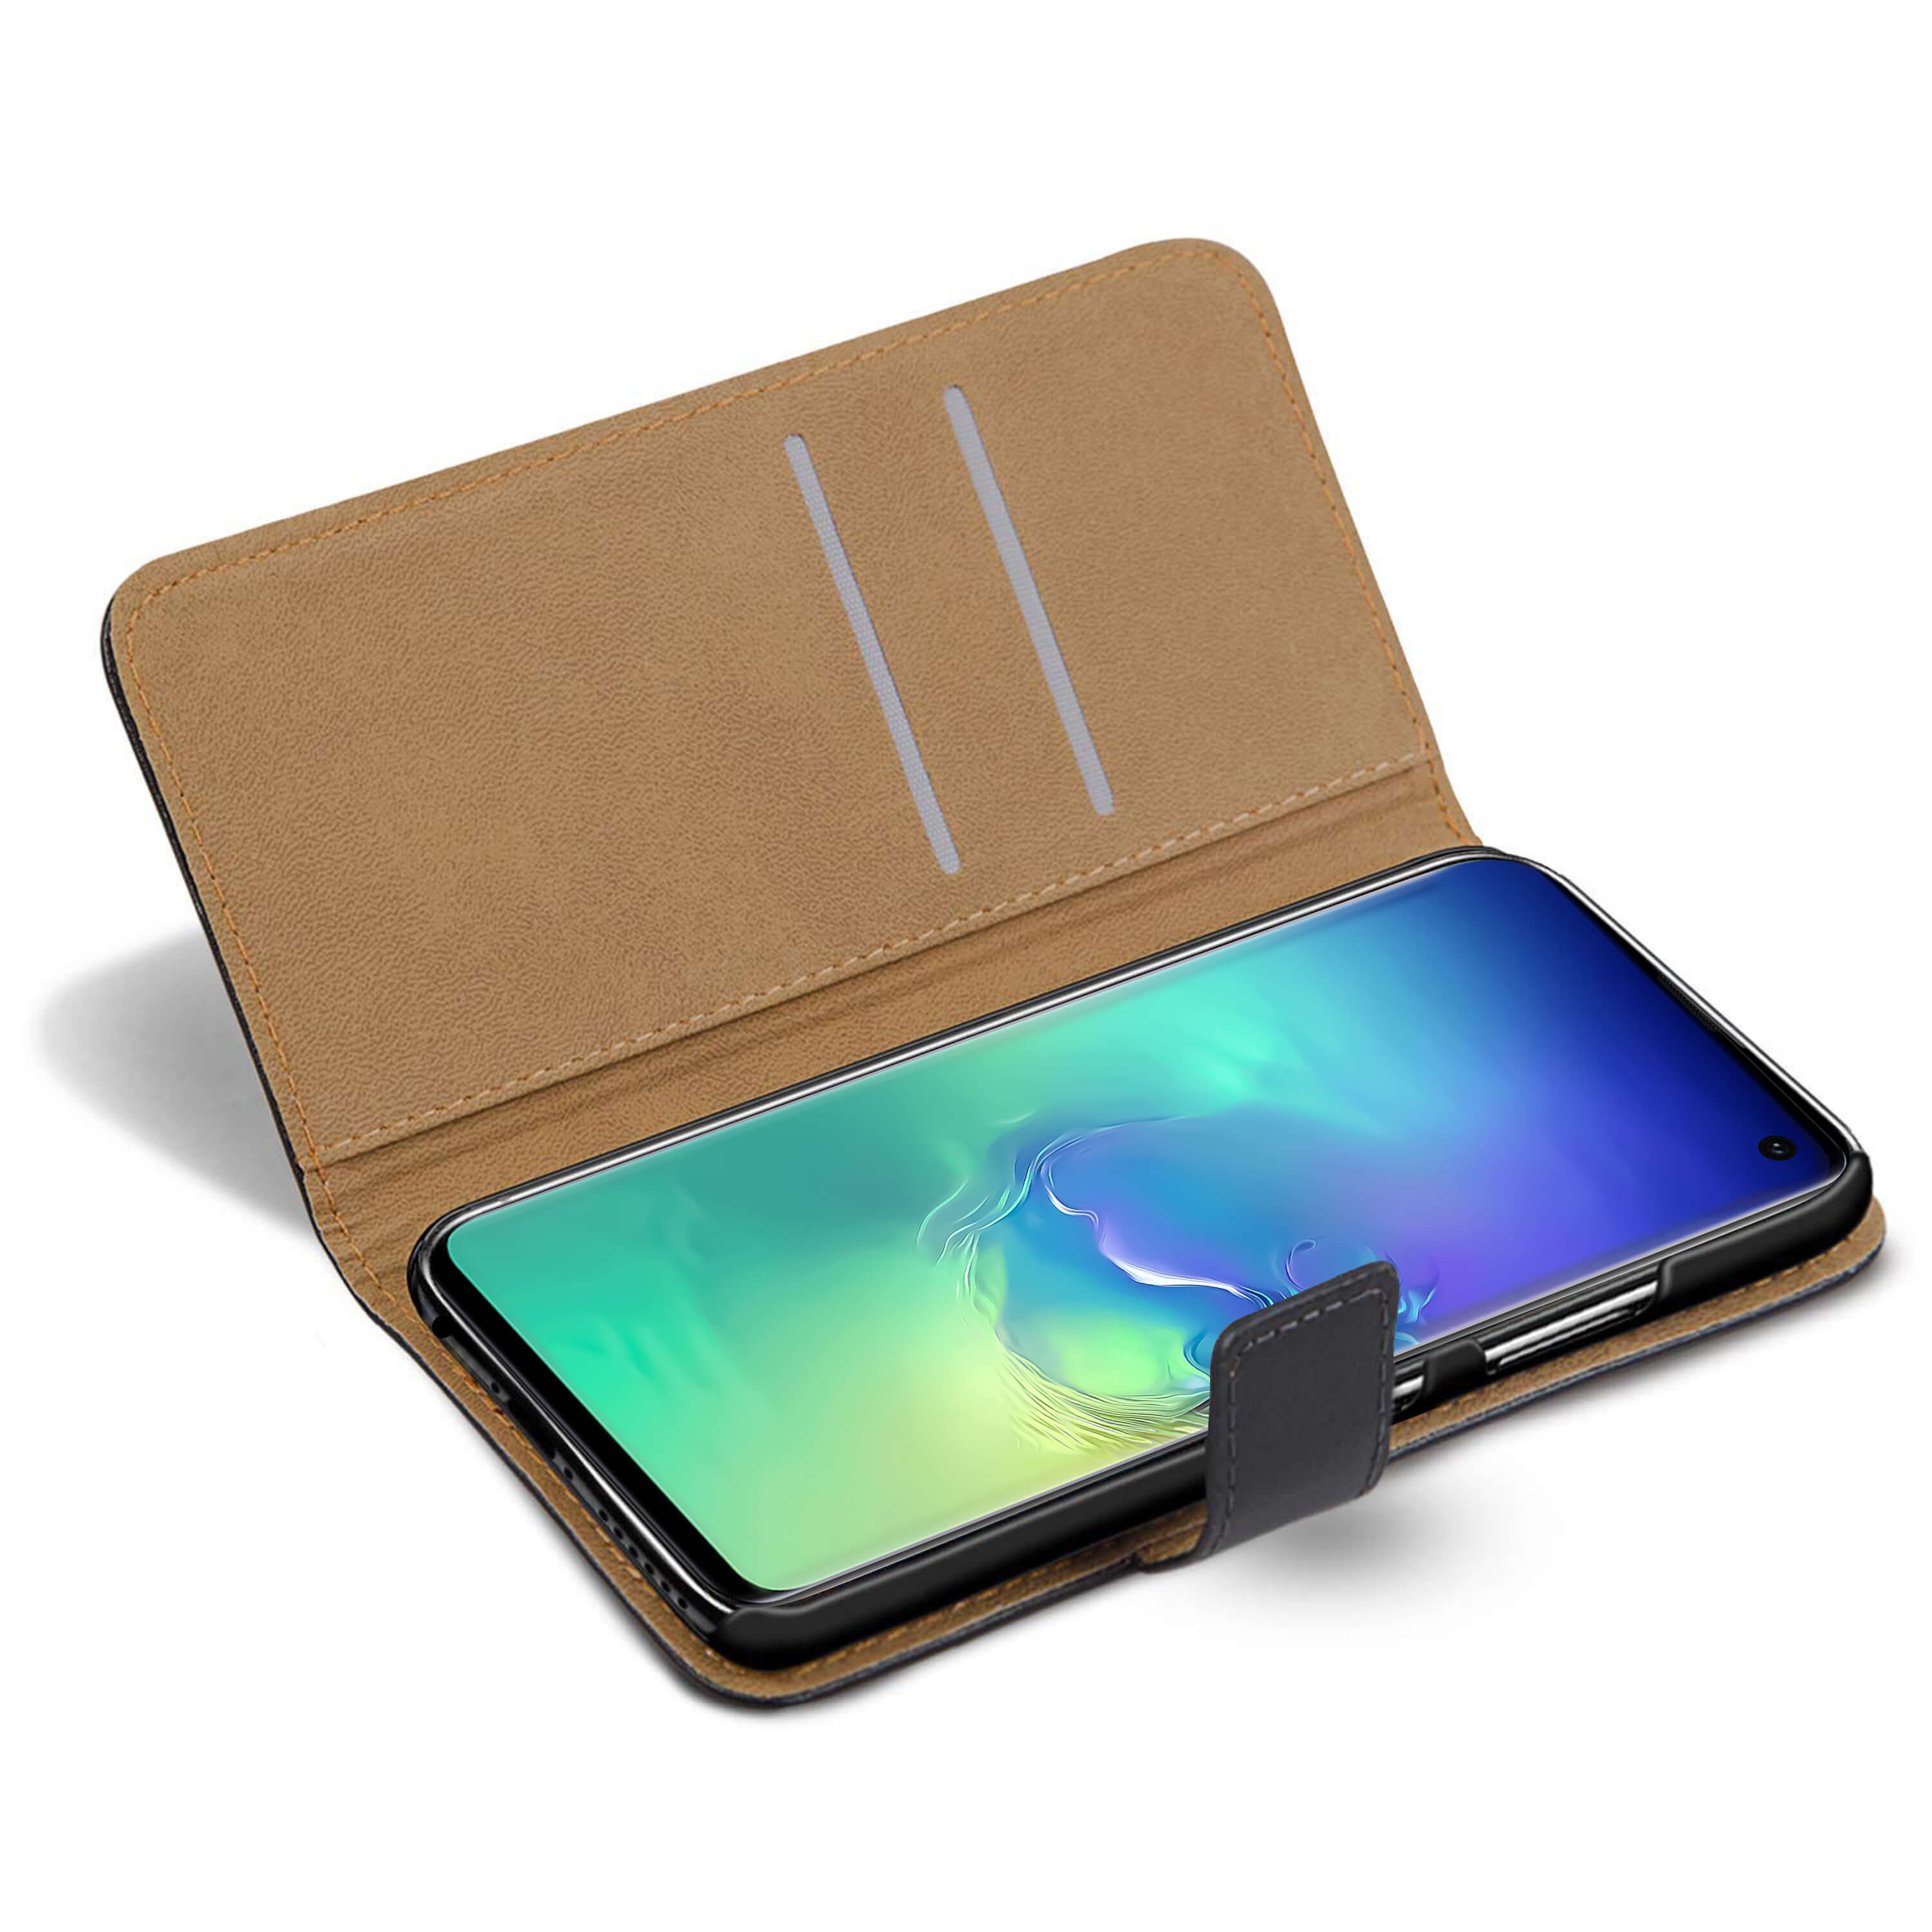 Leather-Flip-Wallet-Magnetic-Case-Cover-For-Samsung-Galaxy-S10-Plus-S9-S8-A50 thumbnail 22